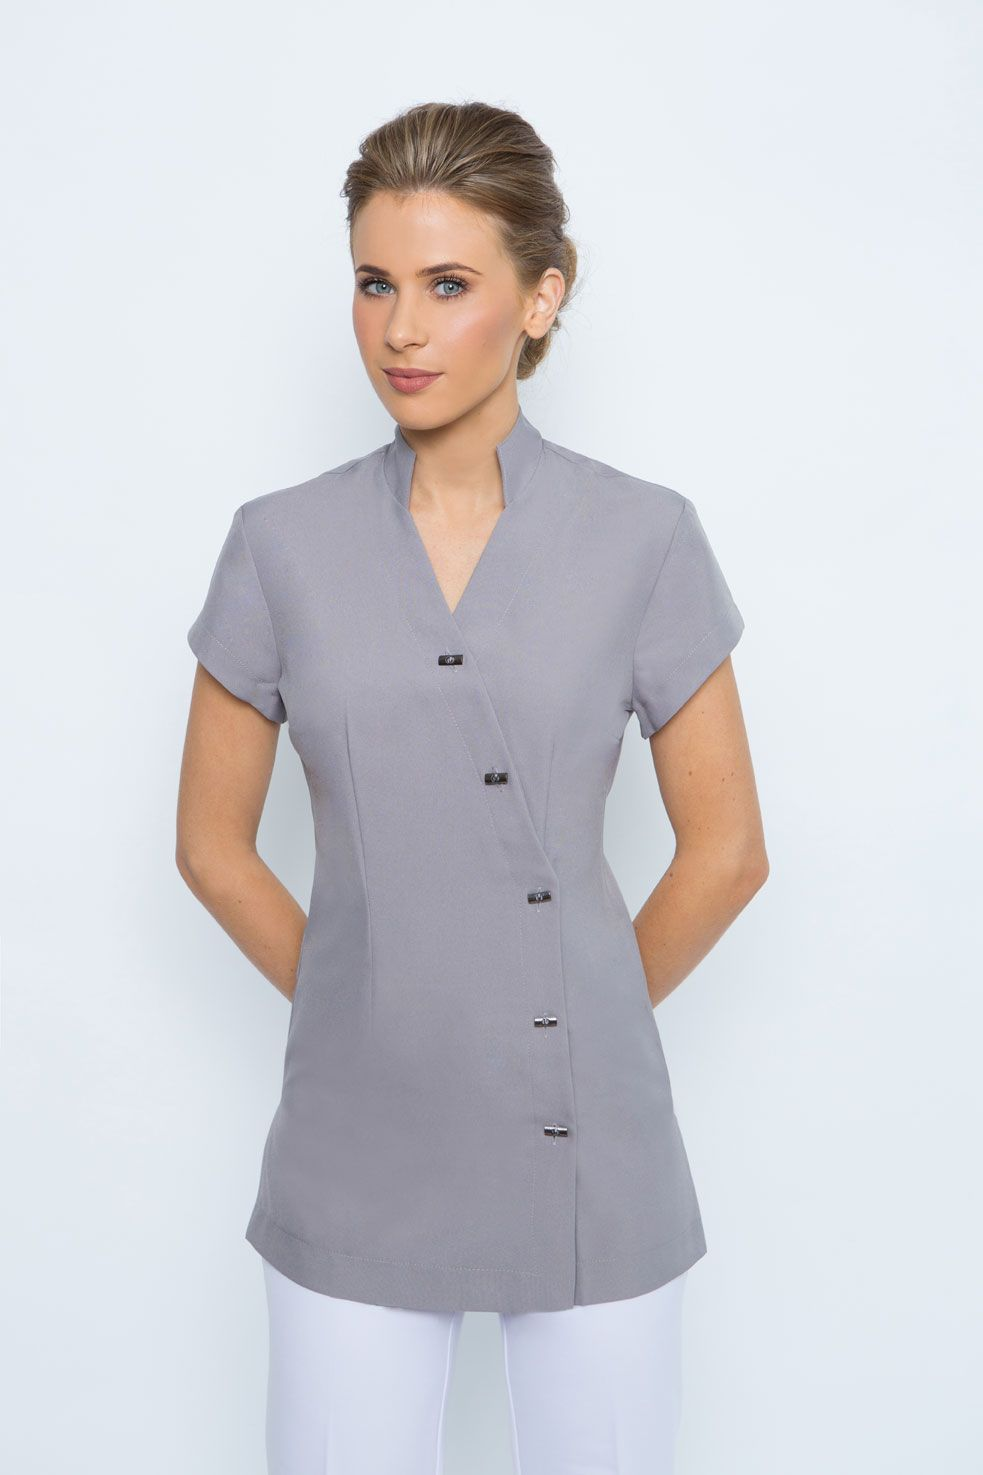 Spa 05 tunic dove grey professional comfortable for Uniform for spa staff